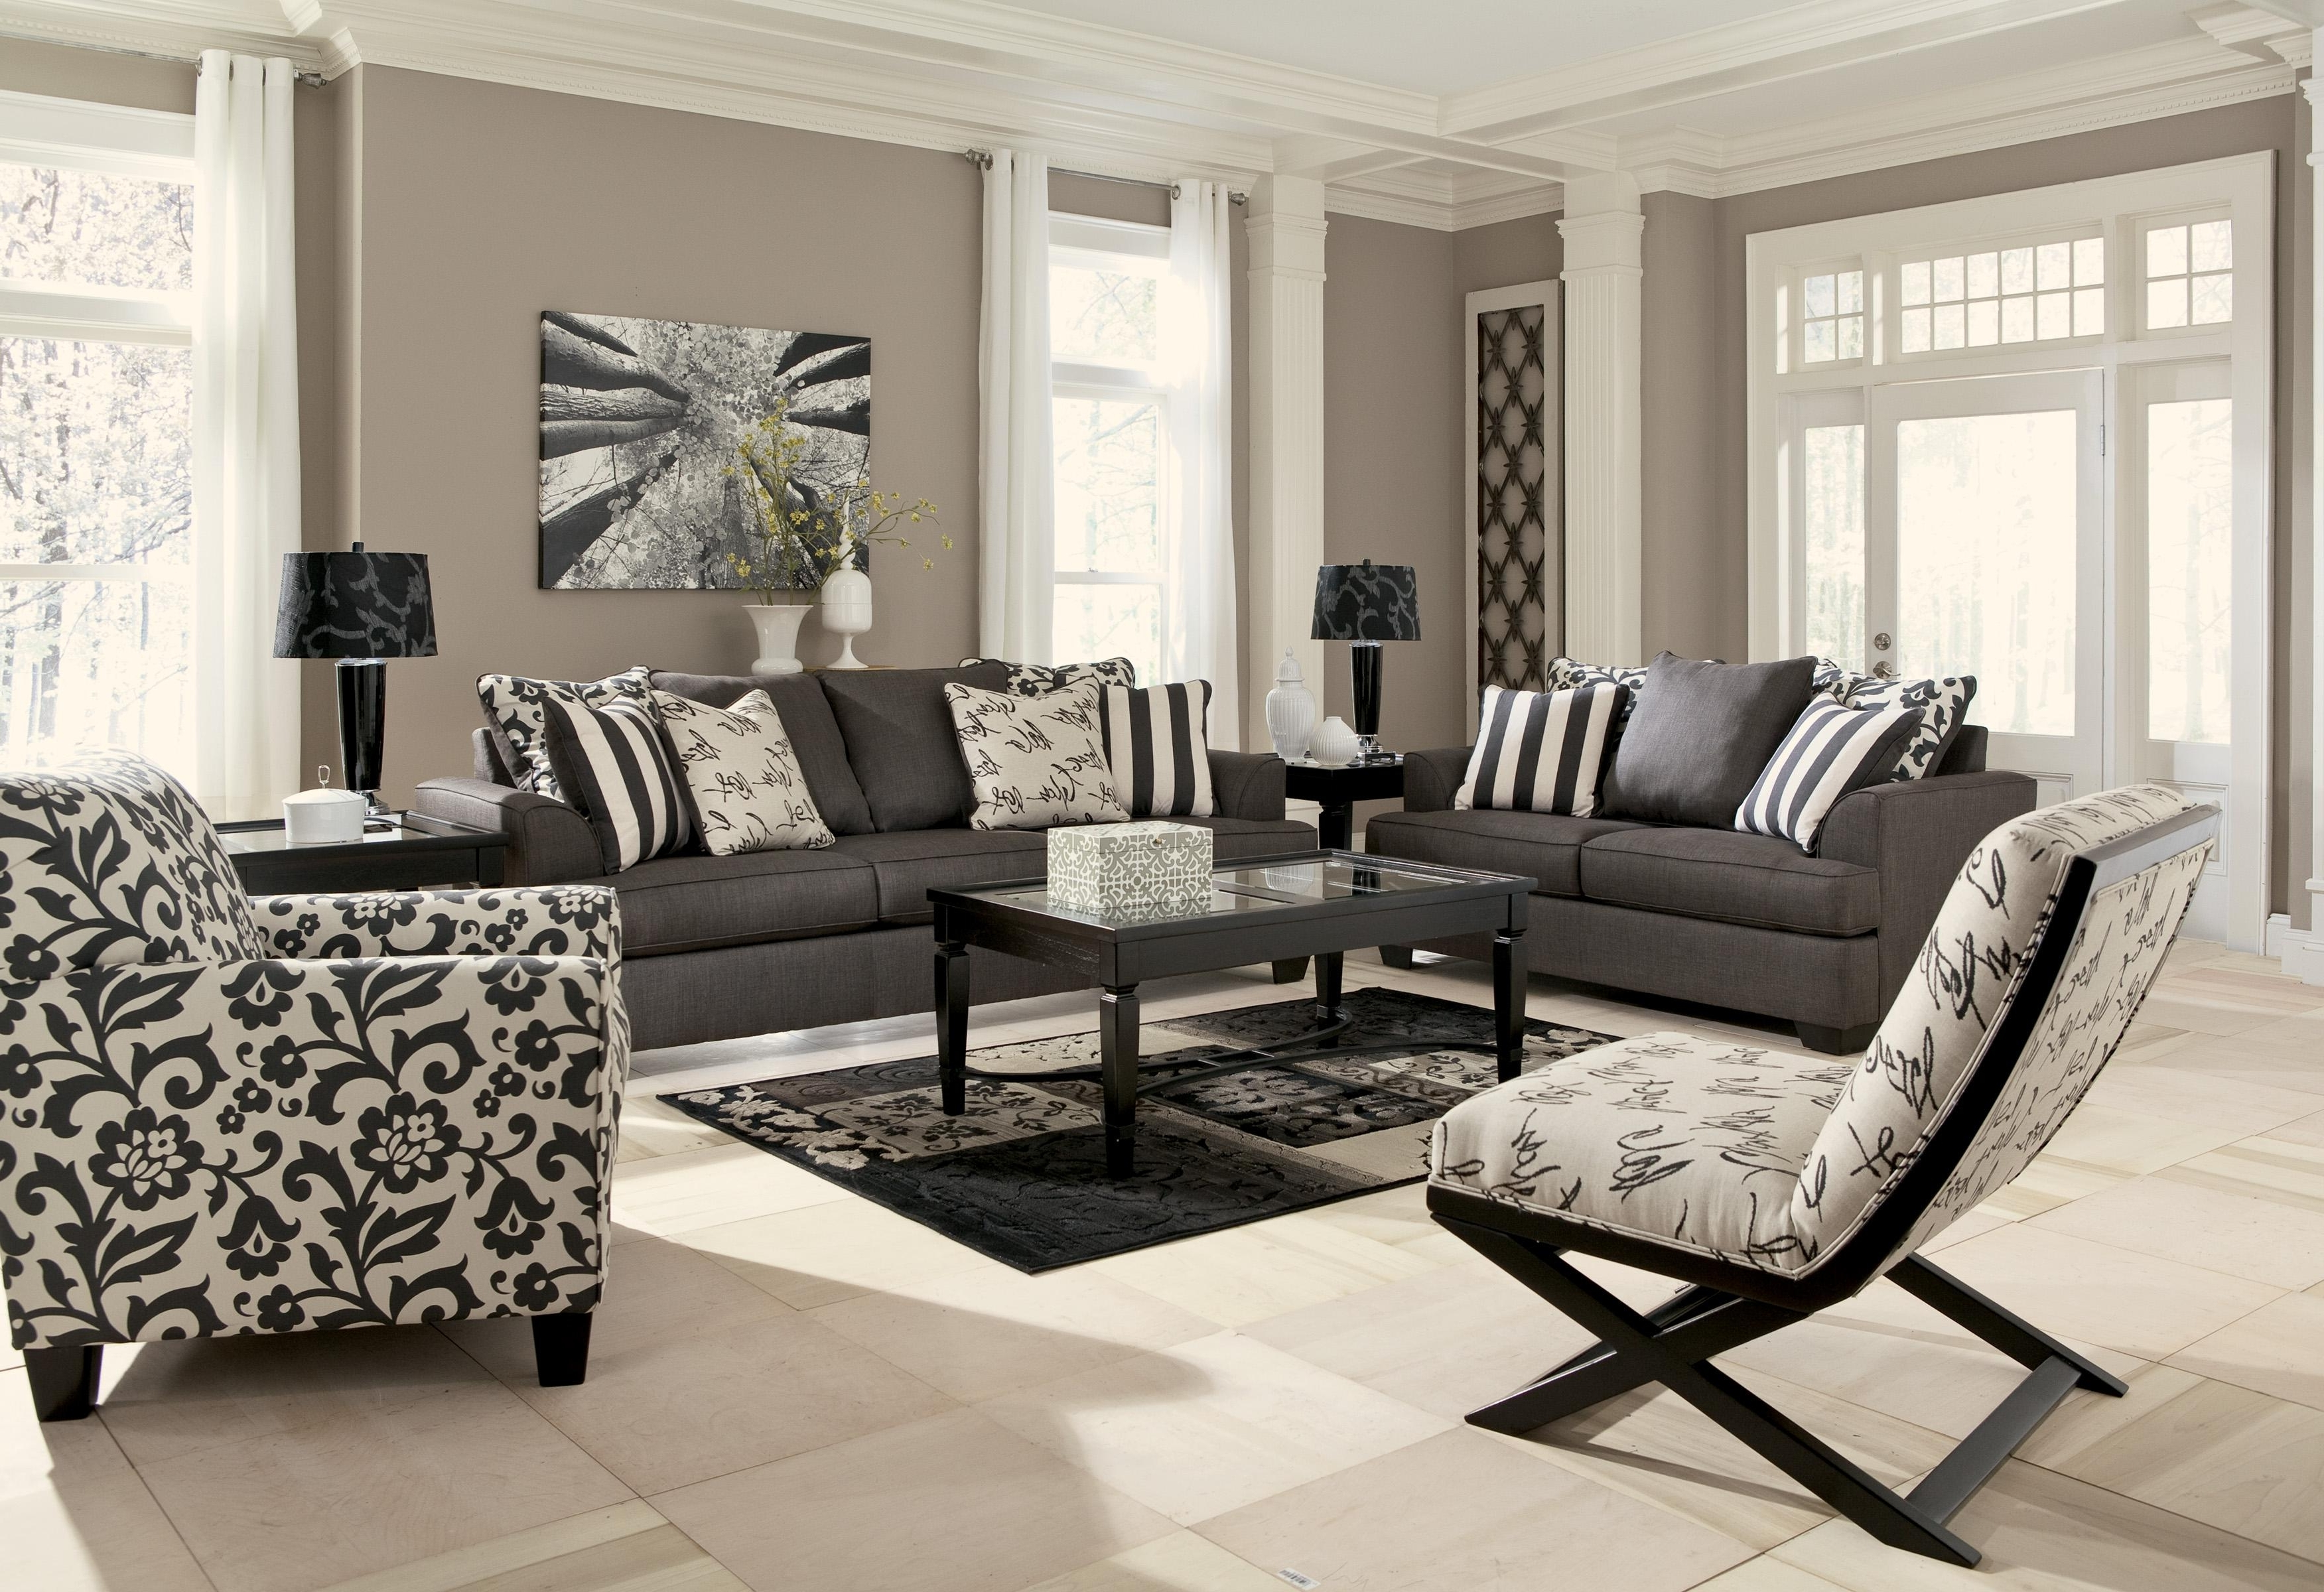 Armless Showood Accent Chair With Abstract Script Fabric For Fashionable Sofa And Accent Chair Sets (View 2 of 20)